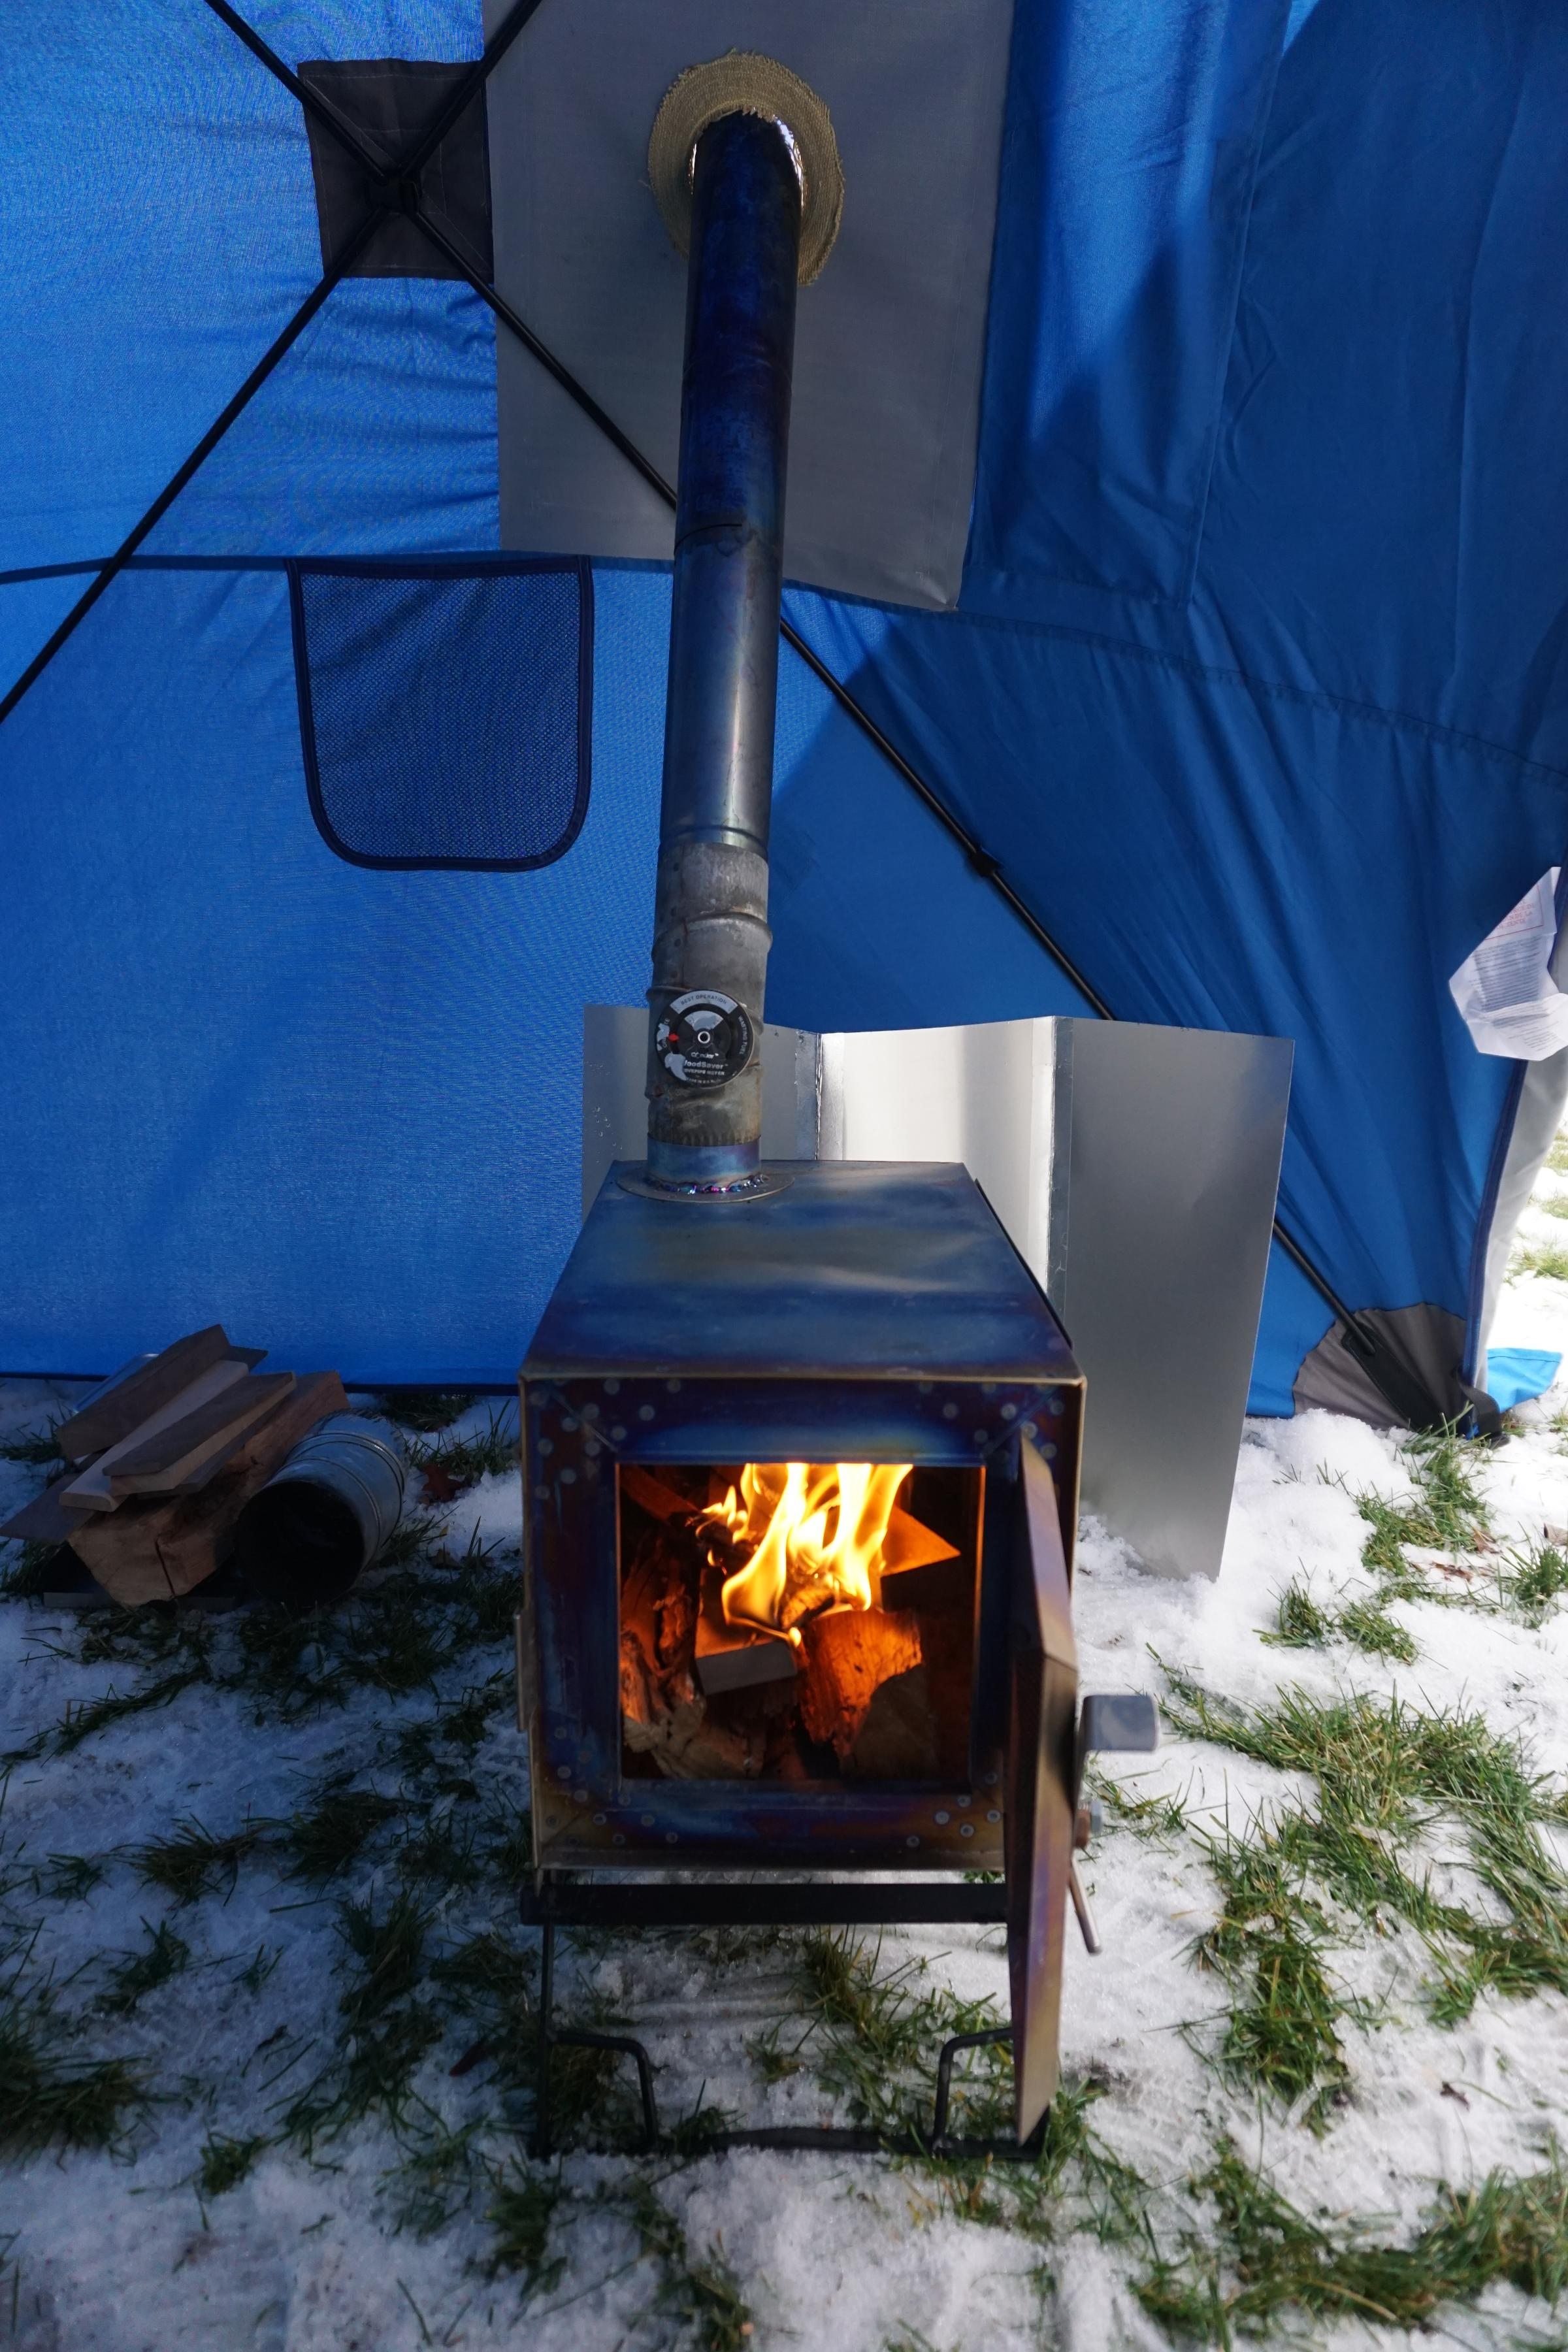 tg & BWCA My new hot tent - modified hub shelter Boundary Waters Winter ...